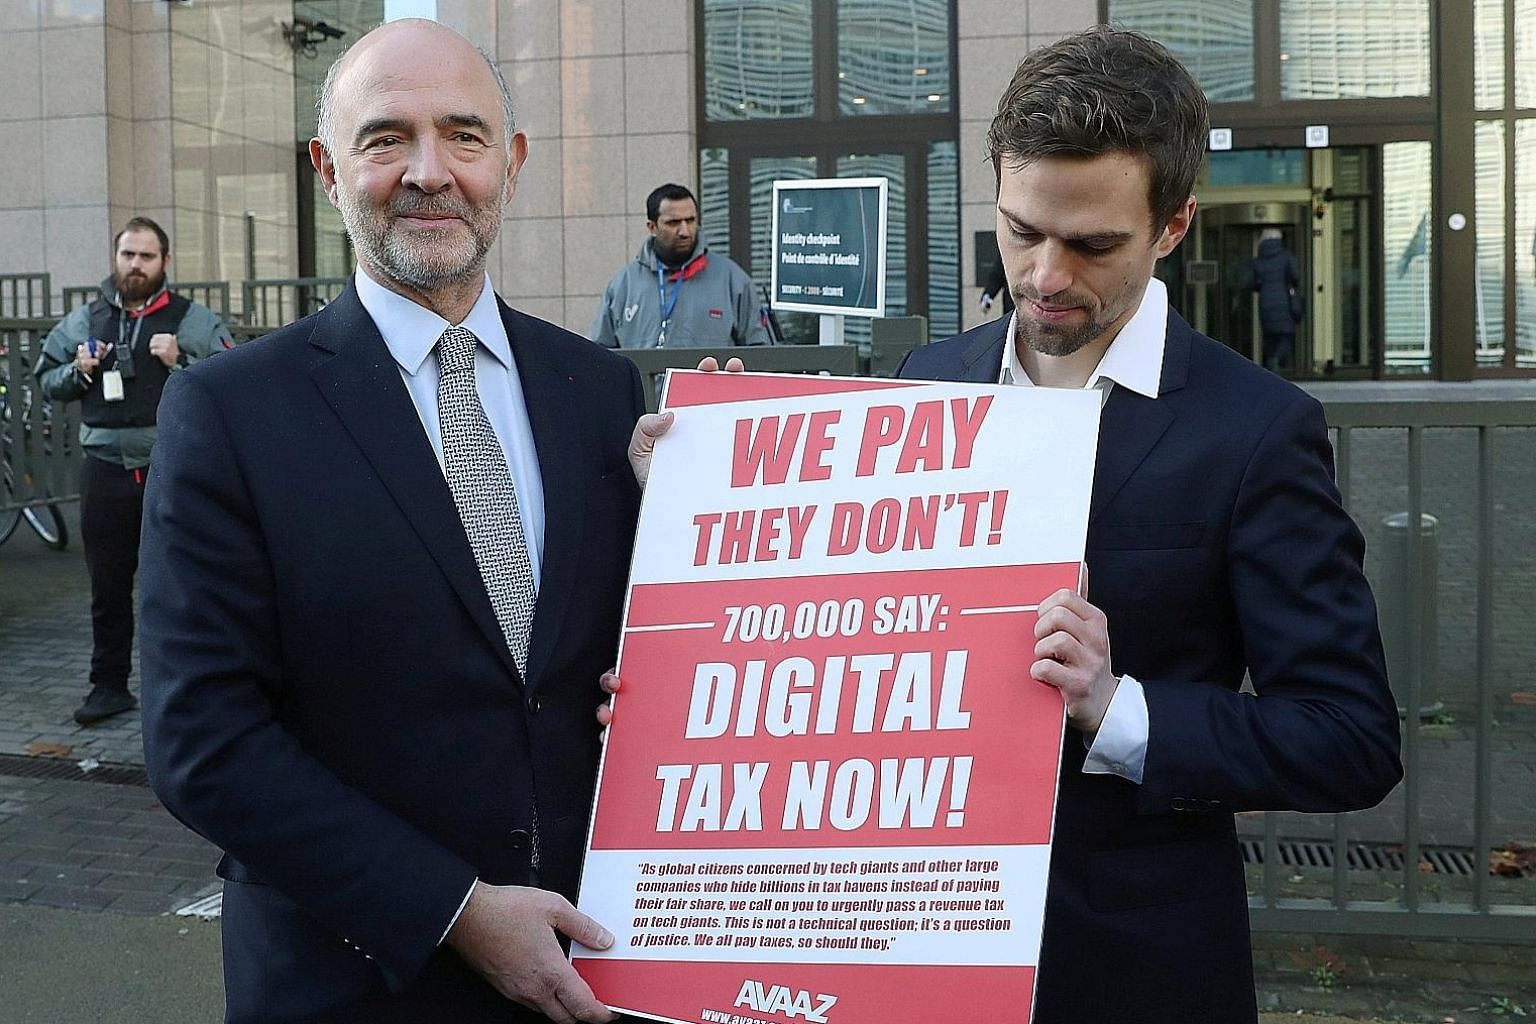 European Commissioner for Economic and Financial Affairs Pierre Moscovici (left) receiving a petition on digital tax from a representative of global activism group Avaaz outside the EU headquarters in Brussels, Belgium, last December. At the heart of